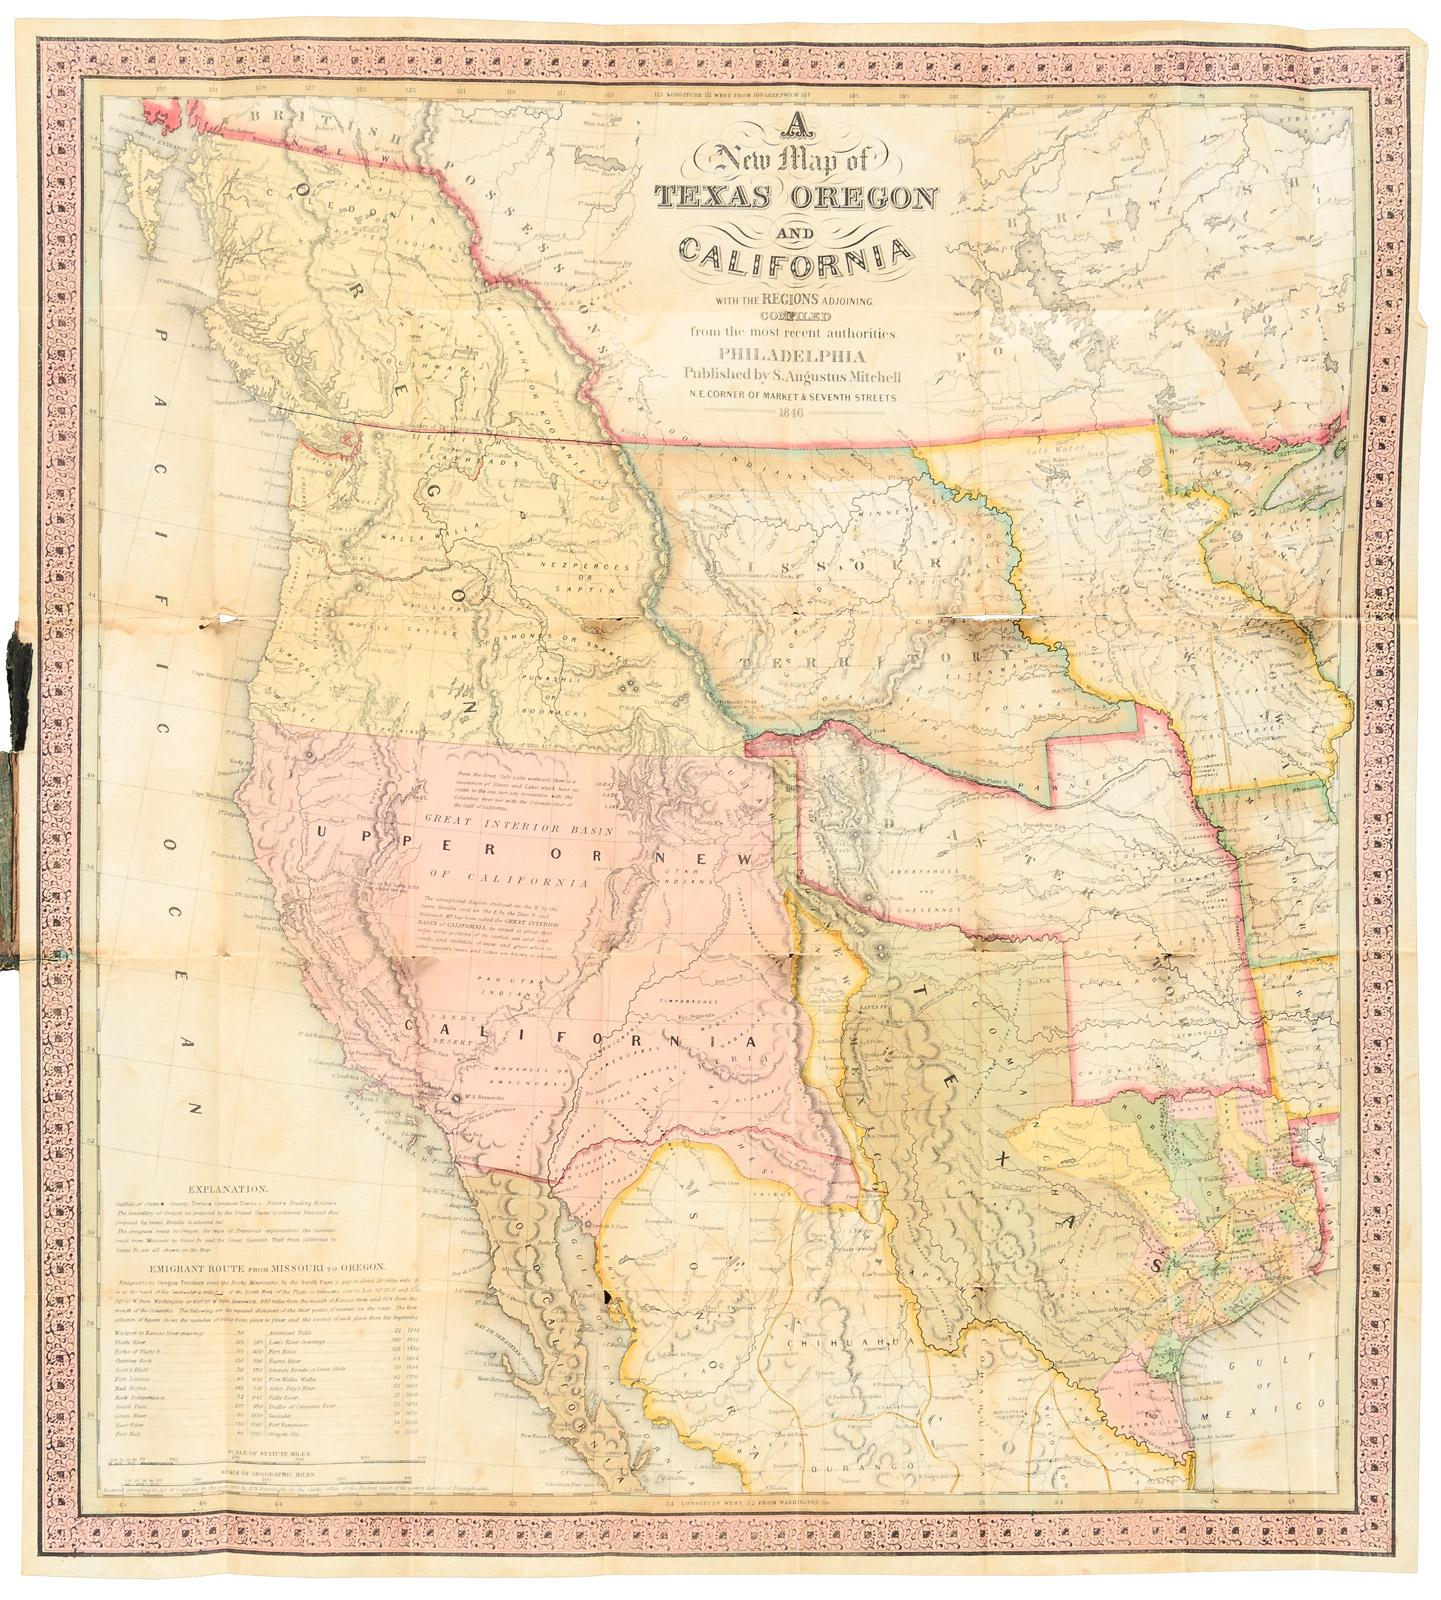 Map Of California To Oregon.A New Map Of Texas Oregon And California With The Regions